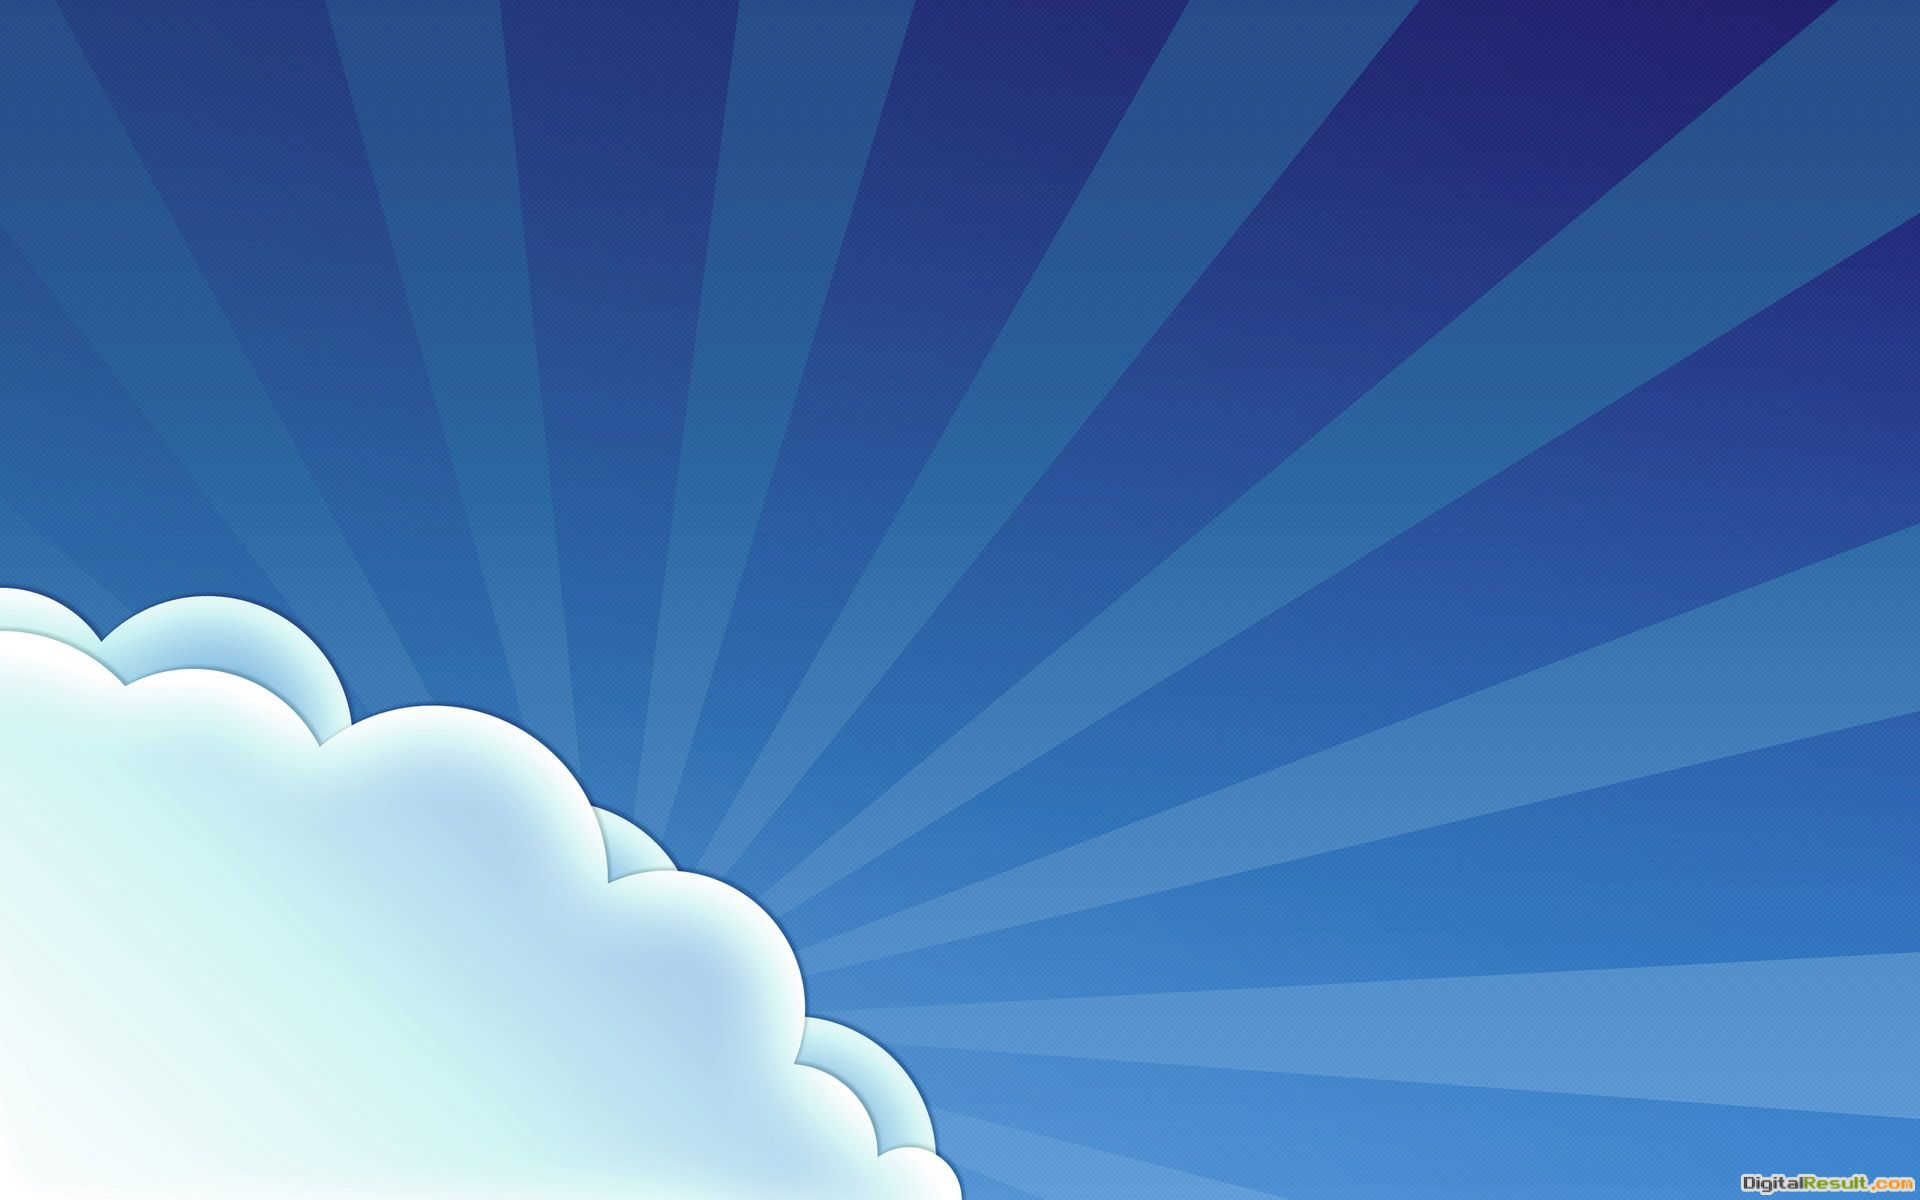 2014 01 wallpaper allimg scenery picture super clouds vector x px jpg 485